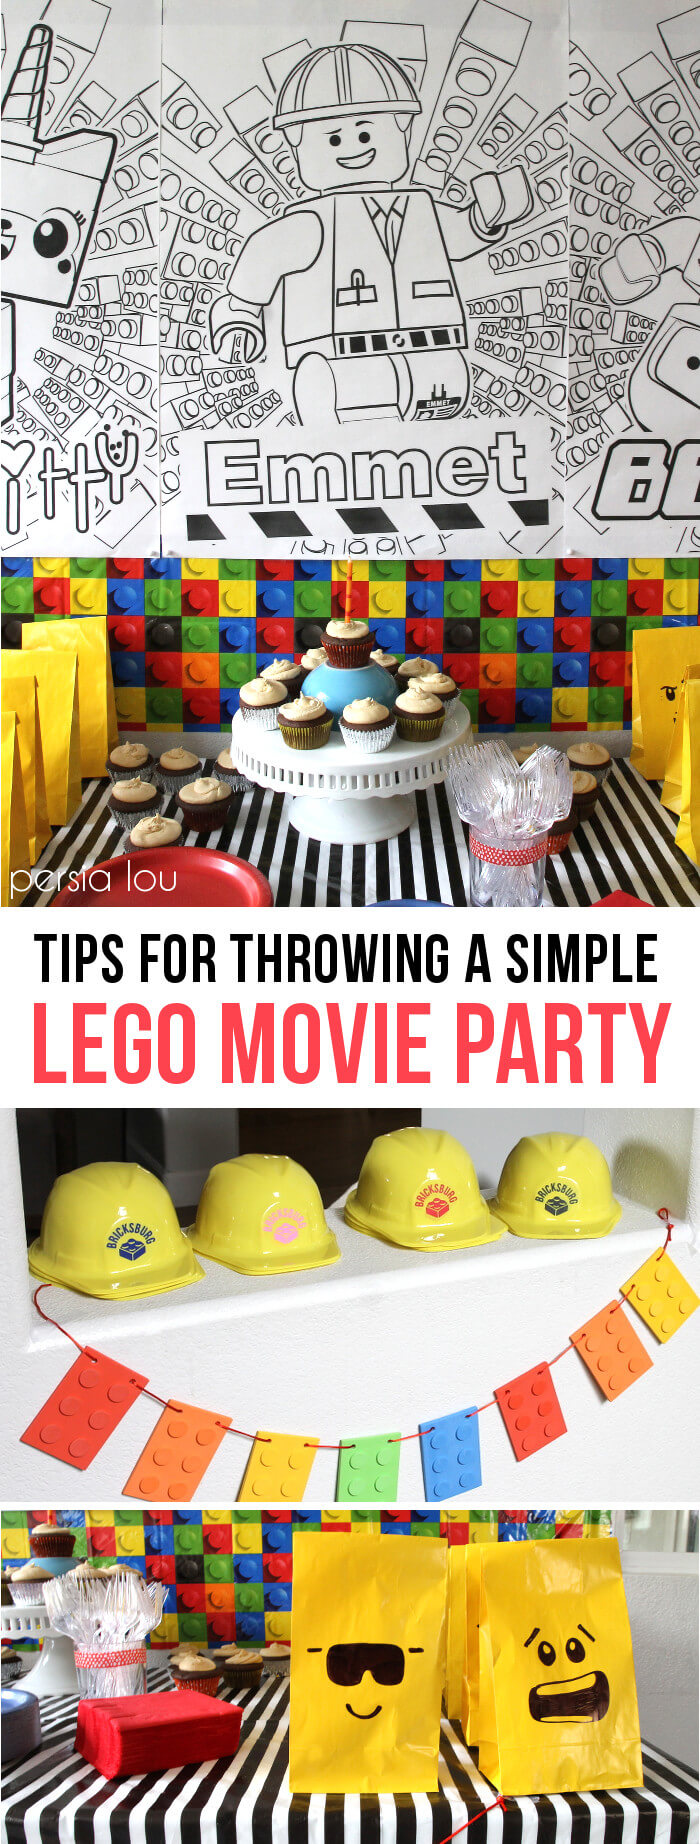 lego-movie-party